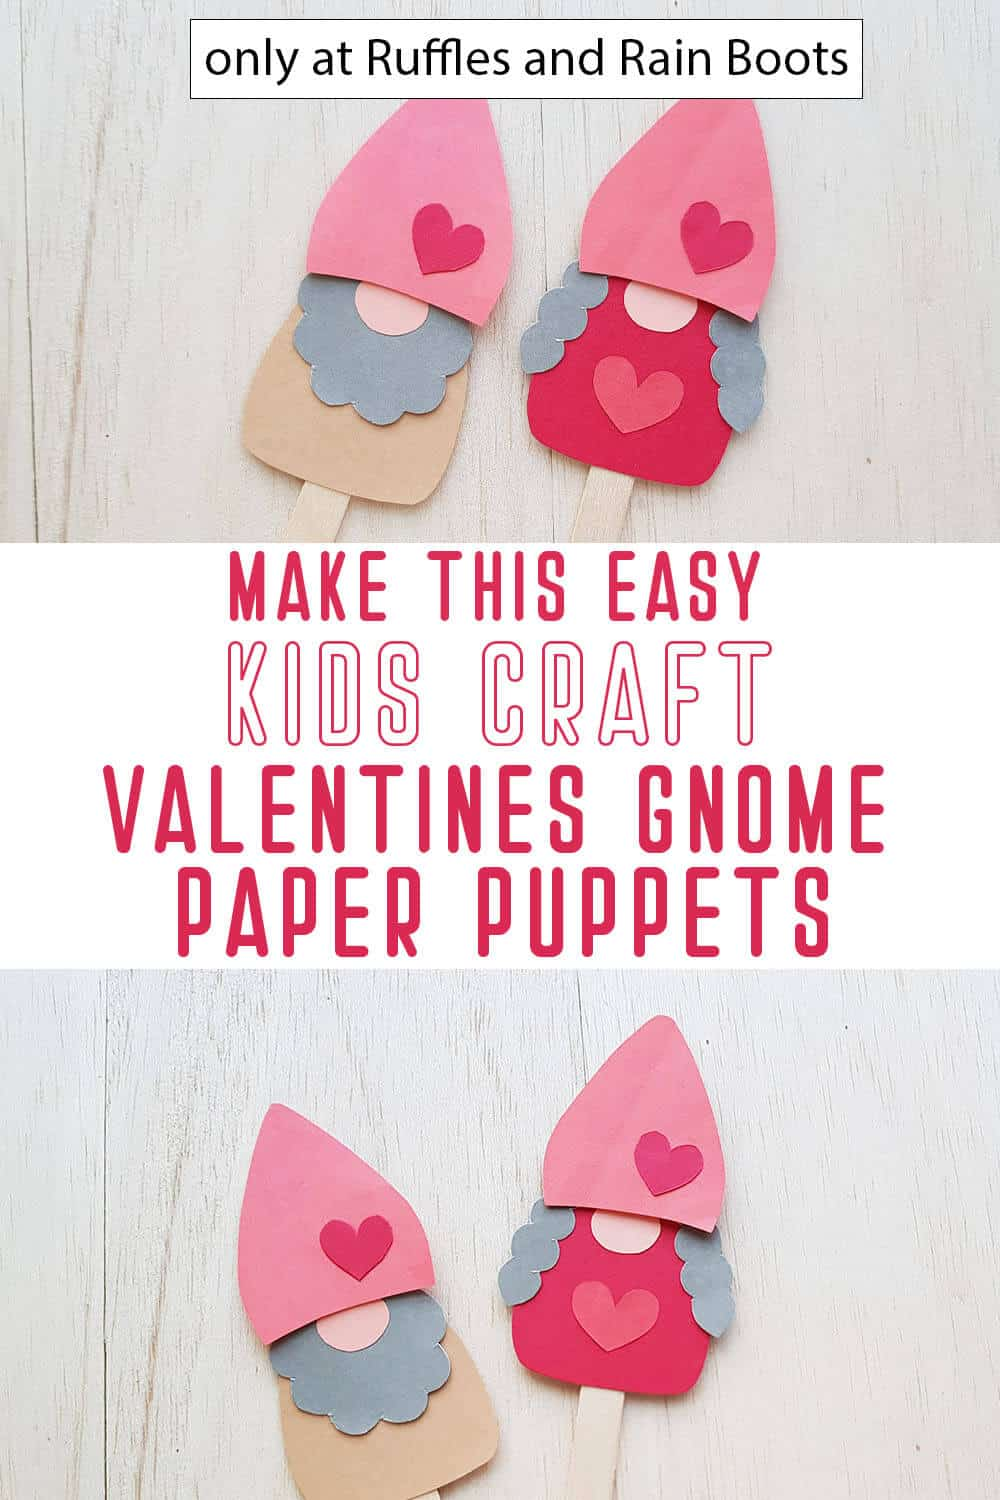 photo collage of valentine gnome puppets craft for kids with text which reads make this easy kids craft valentines gnome paper puppets